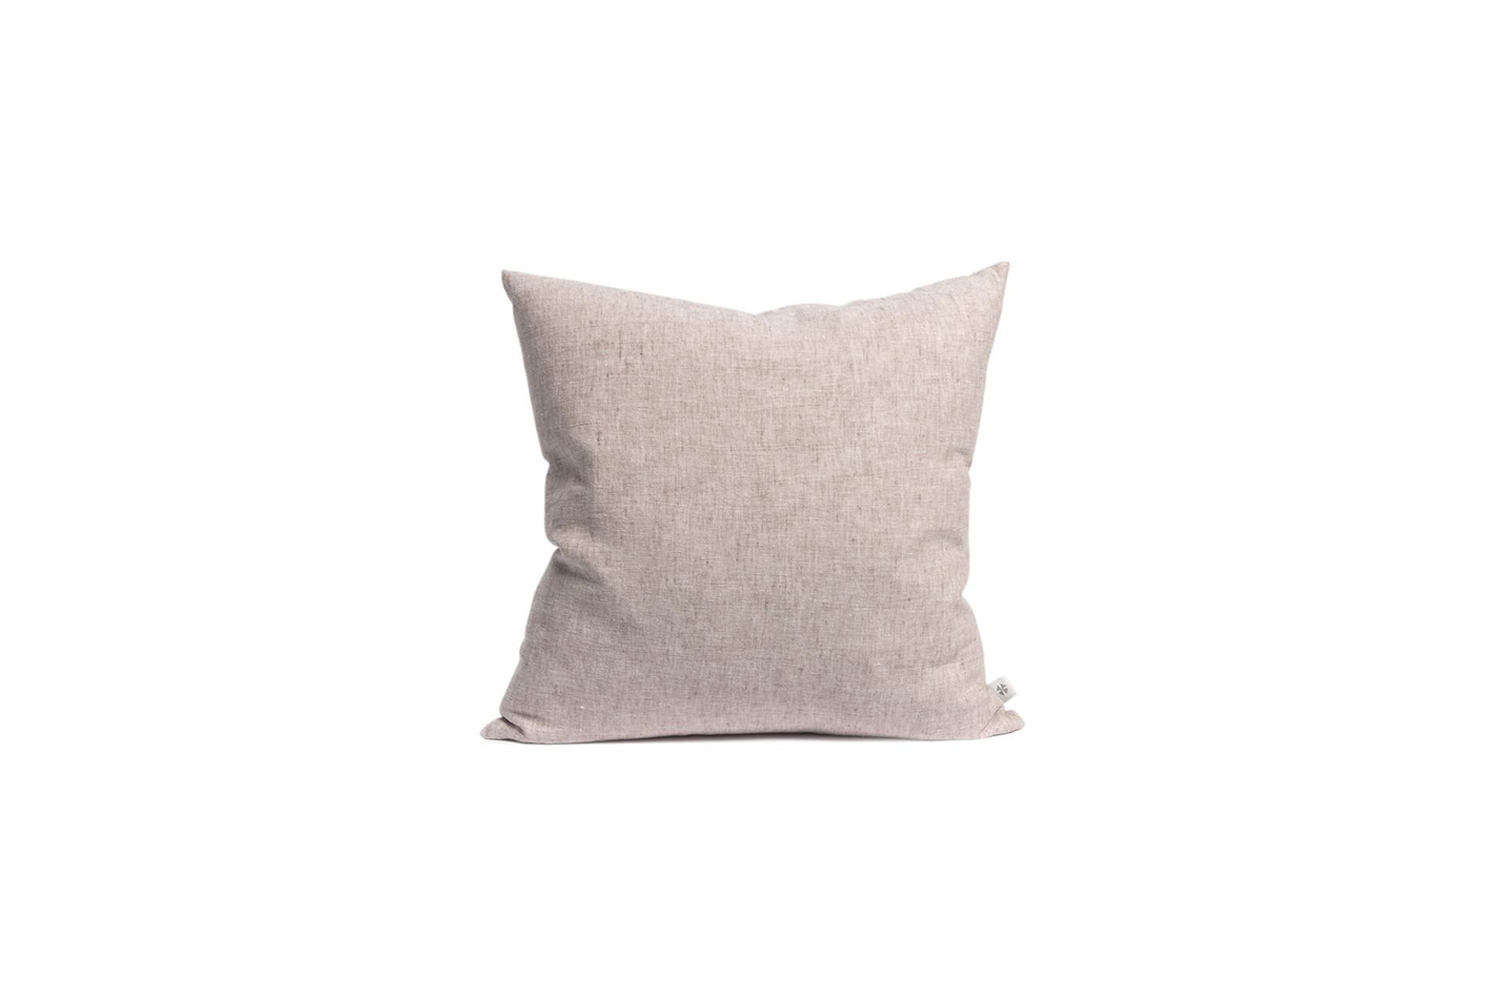 The pink throws are By Mölle Pink Salt Linen Cushions; €59 each with the insert at By Mölle.